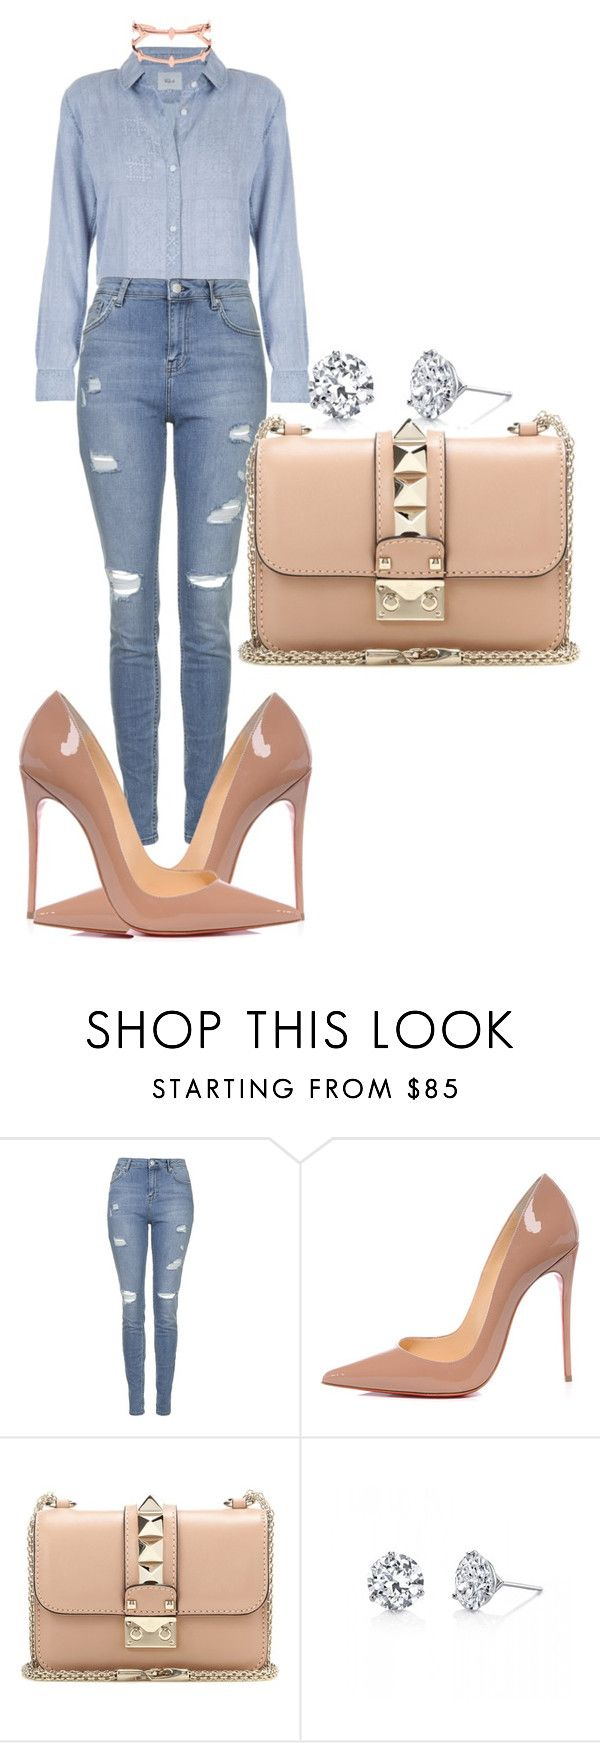 """Untitled #502"" by rhiannonkennedy ❤ liked on Polyvore featuring Topshop, Christian Louboutin, Valentino and Harry Kotlar"